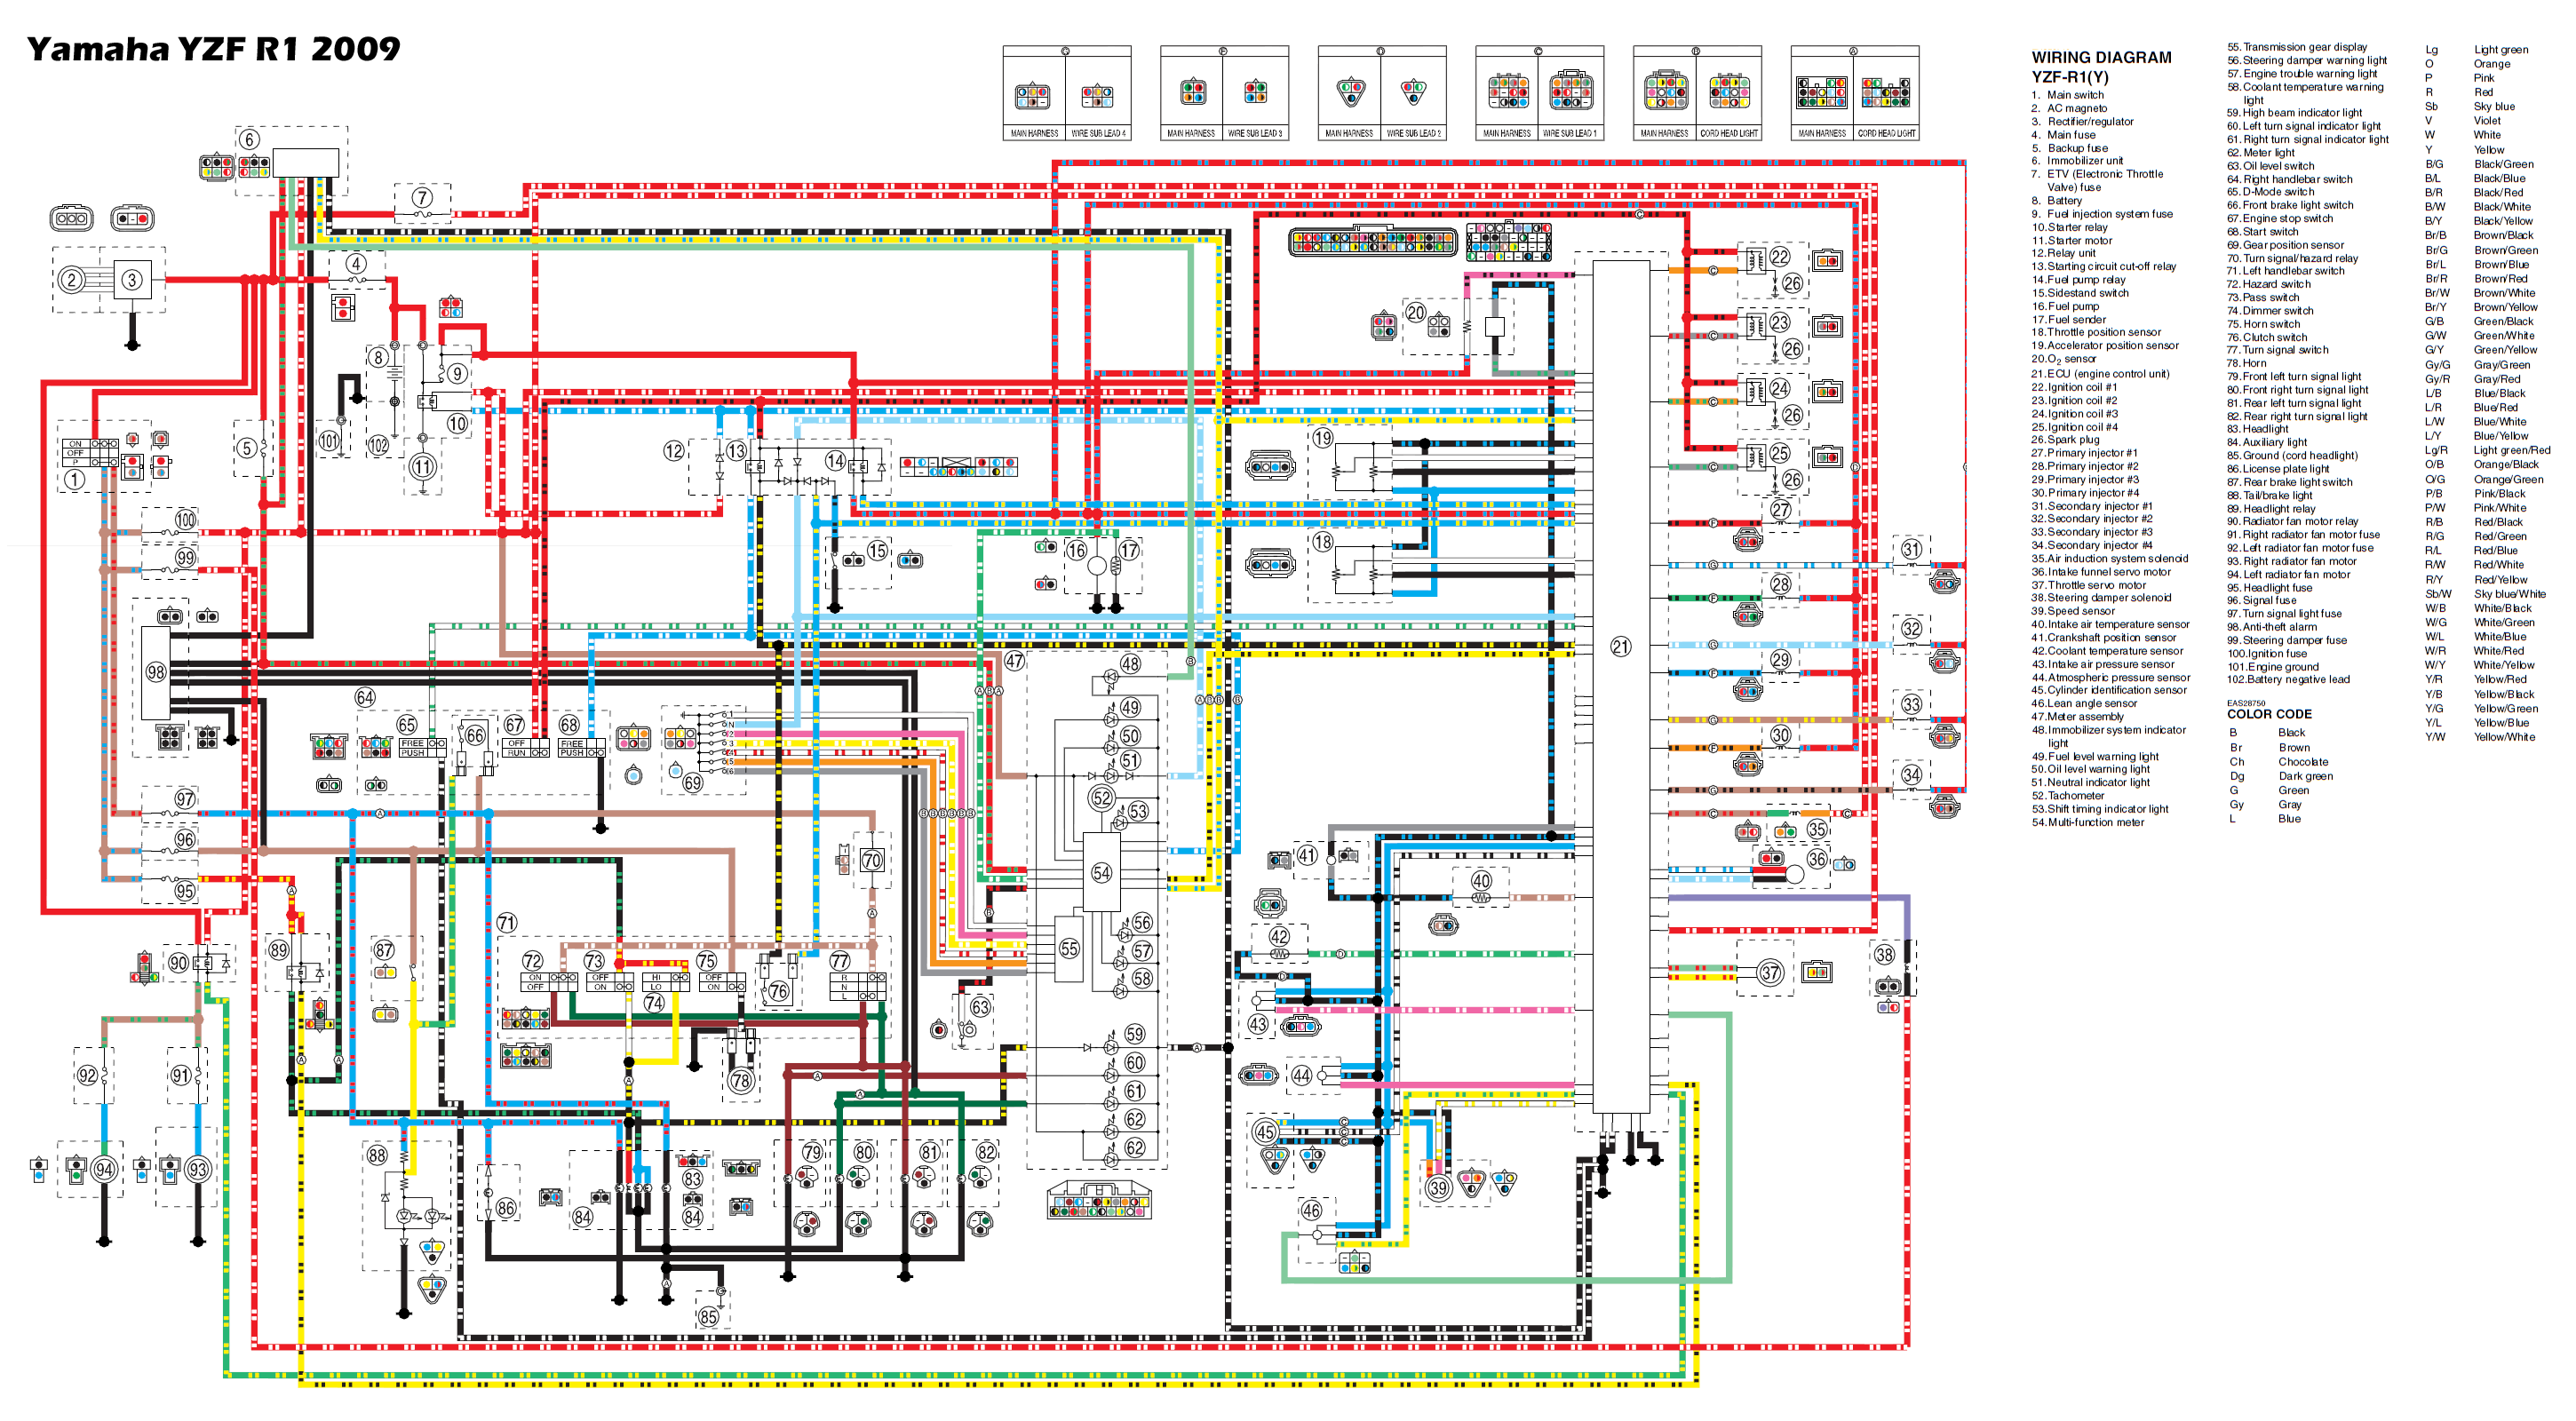 2012 Yzf R1 Wiring Diagram - Wiring Schematics R Wiring Diagram on